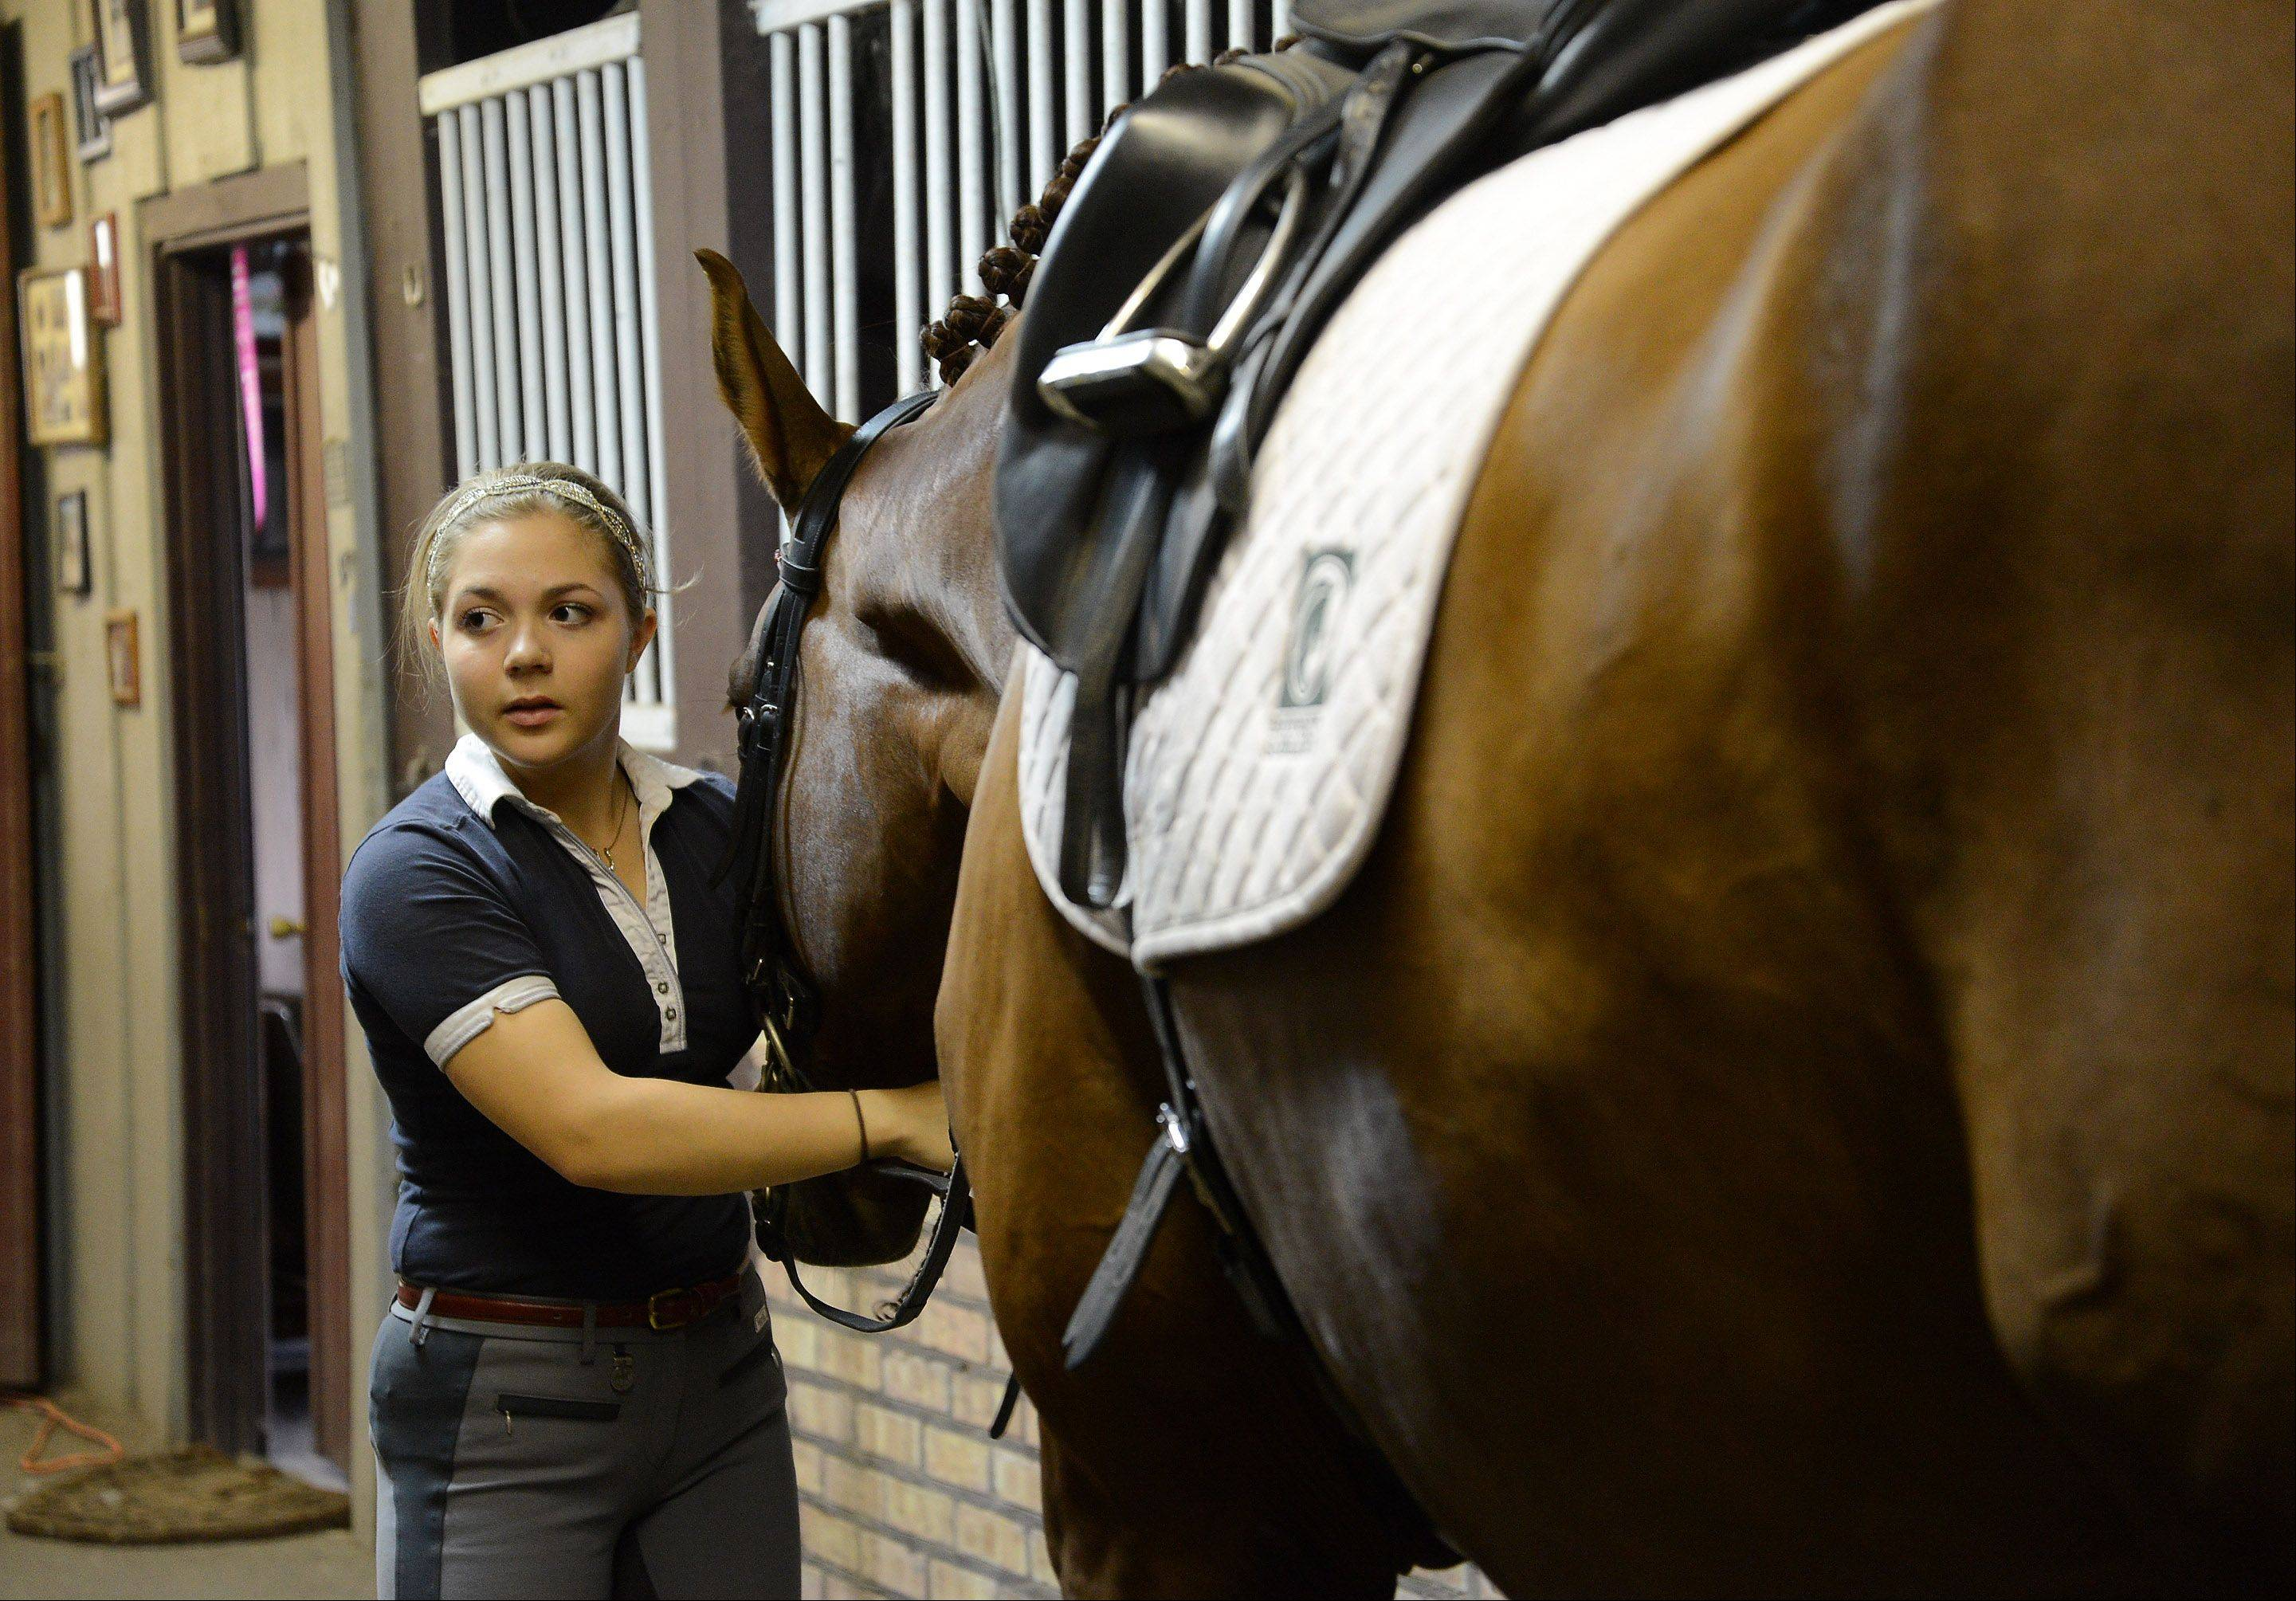 Barrington High School senior Rosie Julian-Simoes and horse Proteus prep for a training session at the Flying Dutchman Farm in Barrington Hills. She's among the country's top-ranked dressage competitors in her division.